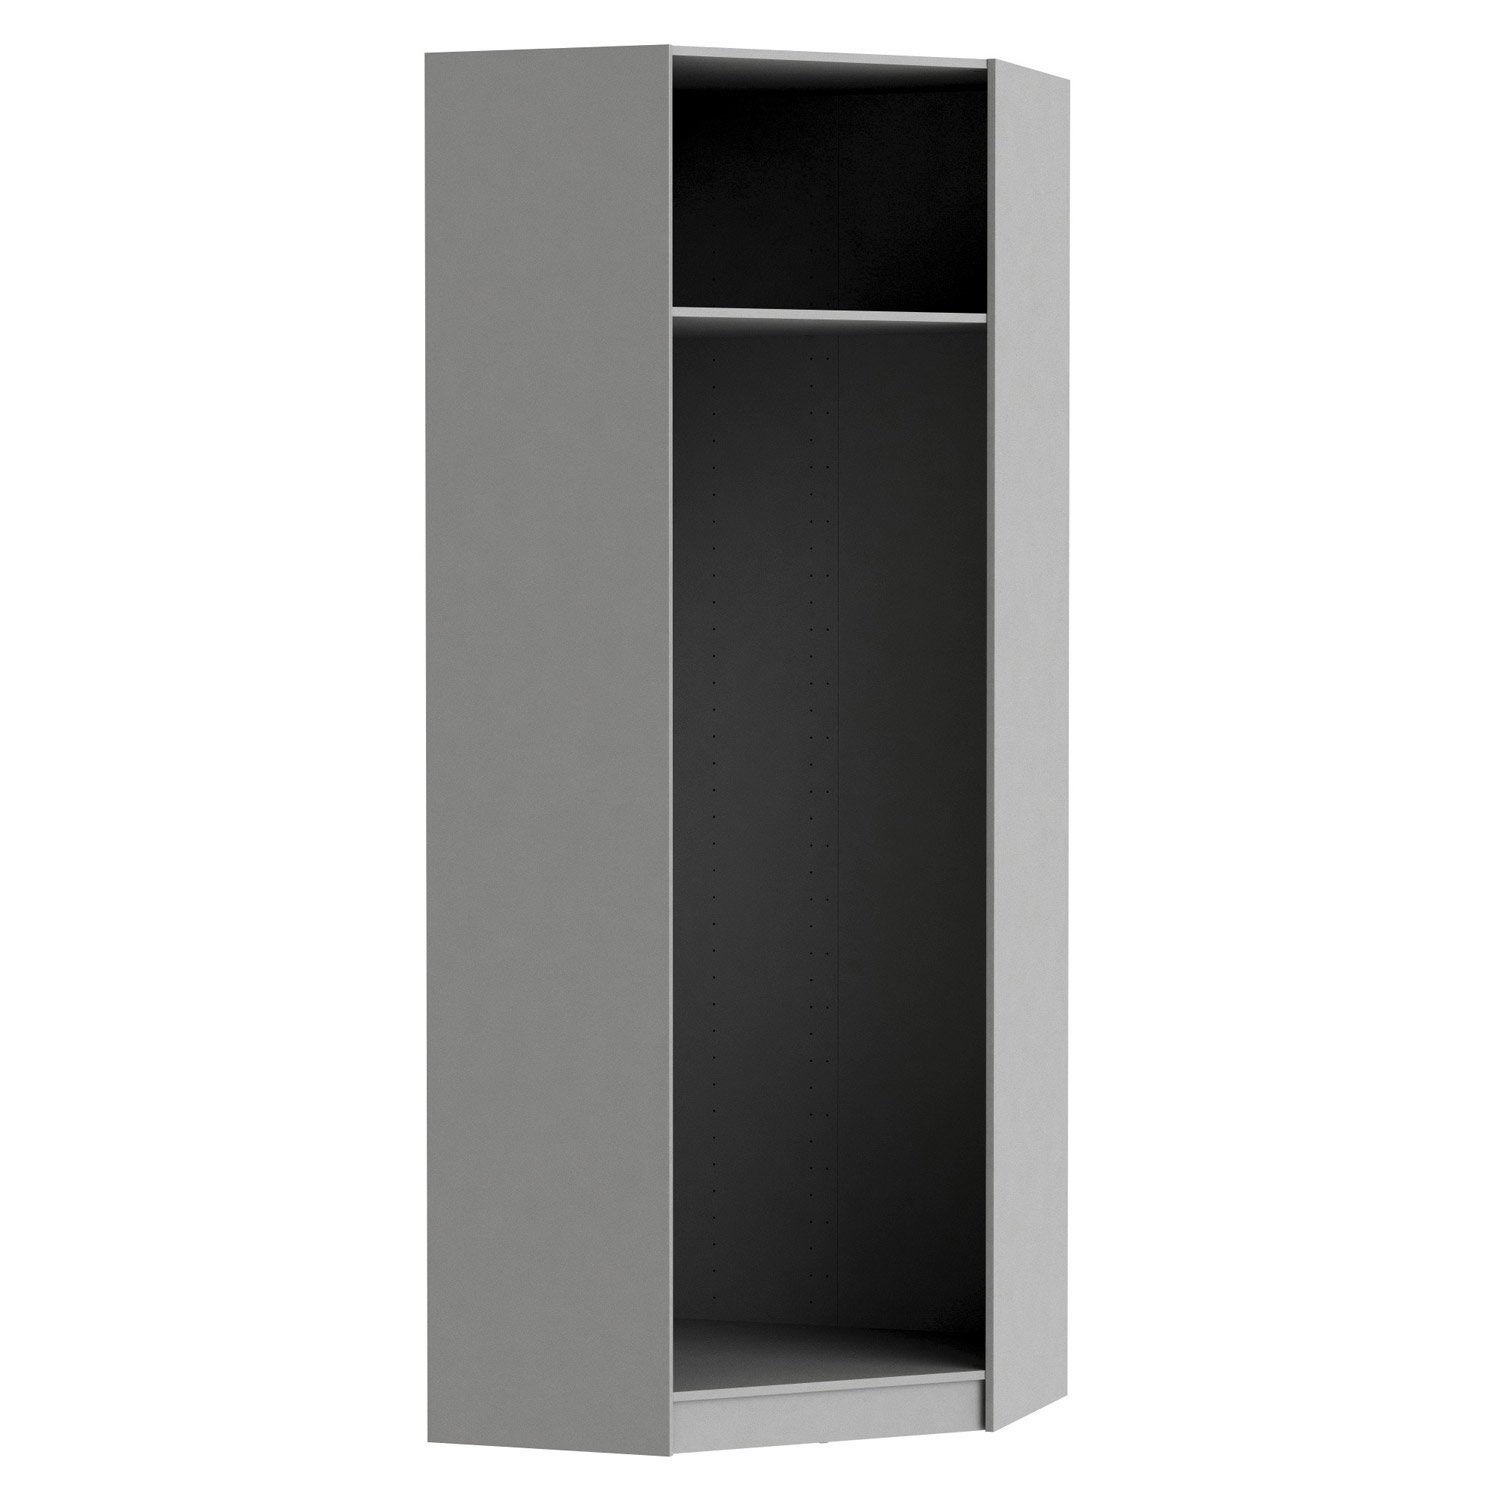 Caisson D 39 Angle Spaceo Home 240 X 89 X 89 Cm Anthracite Leroy Merlin